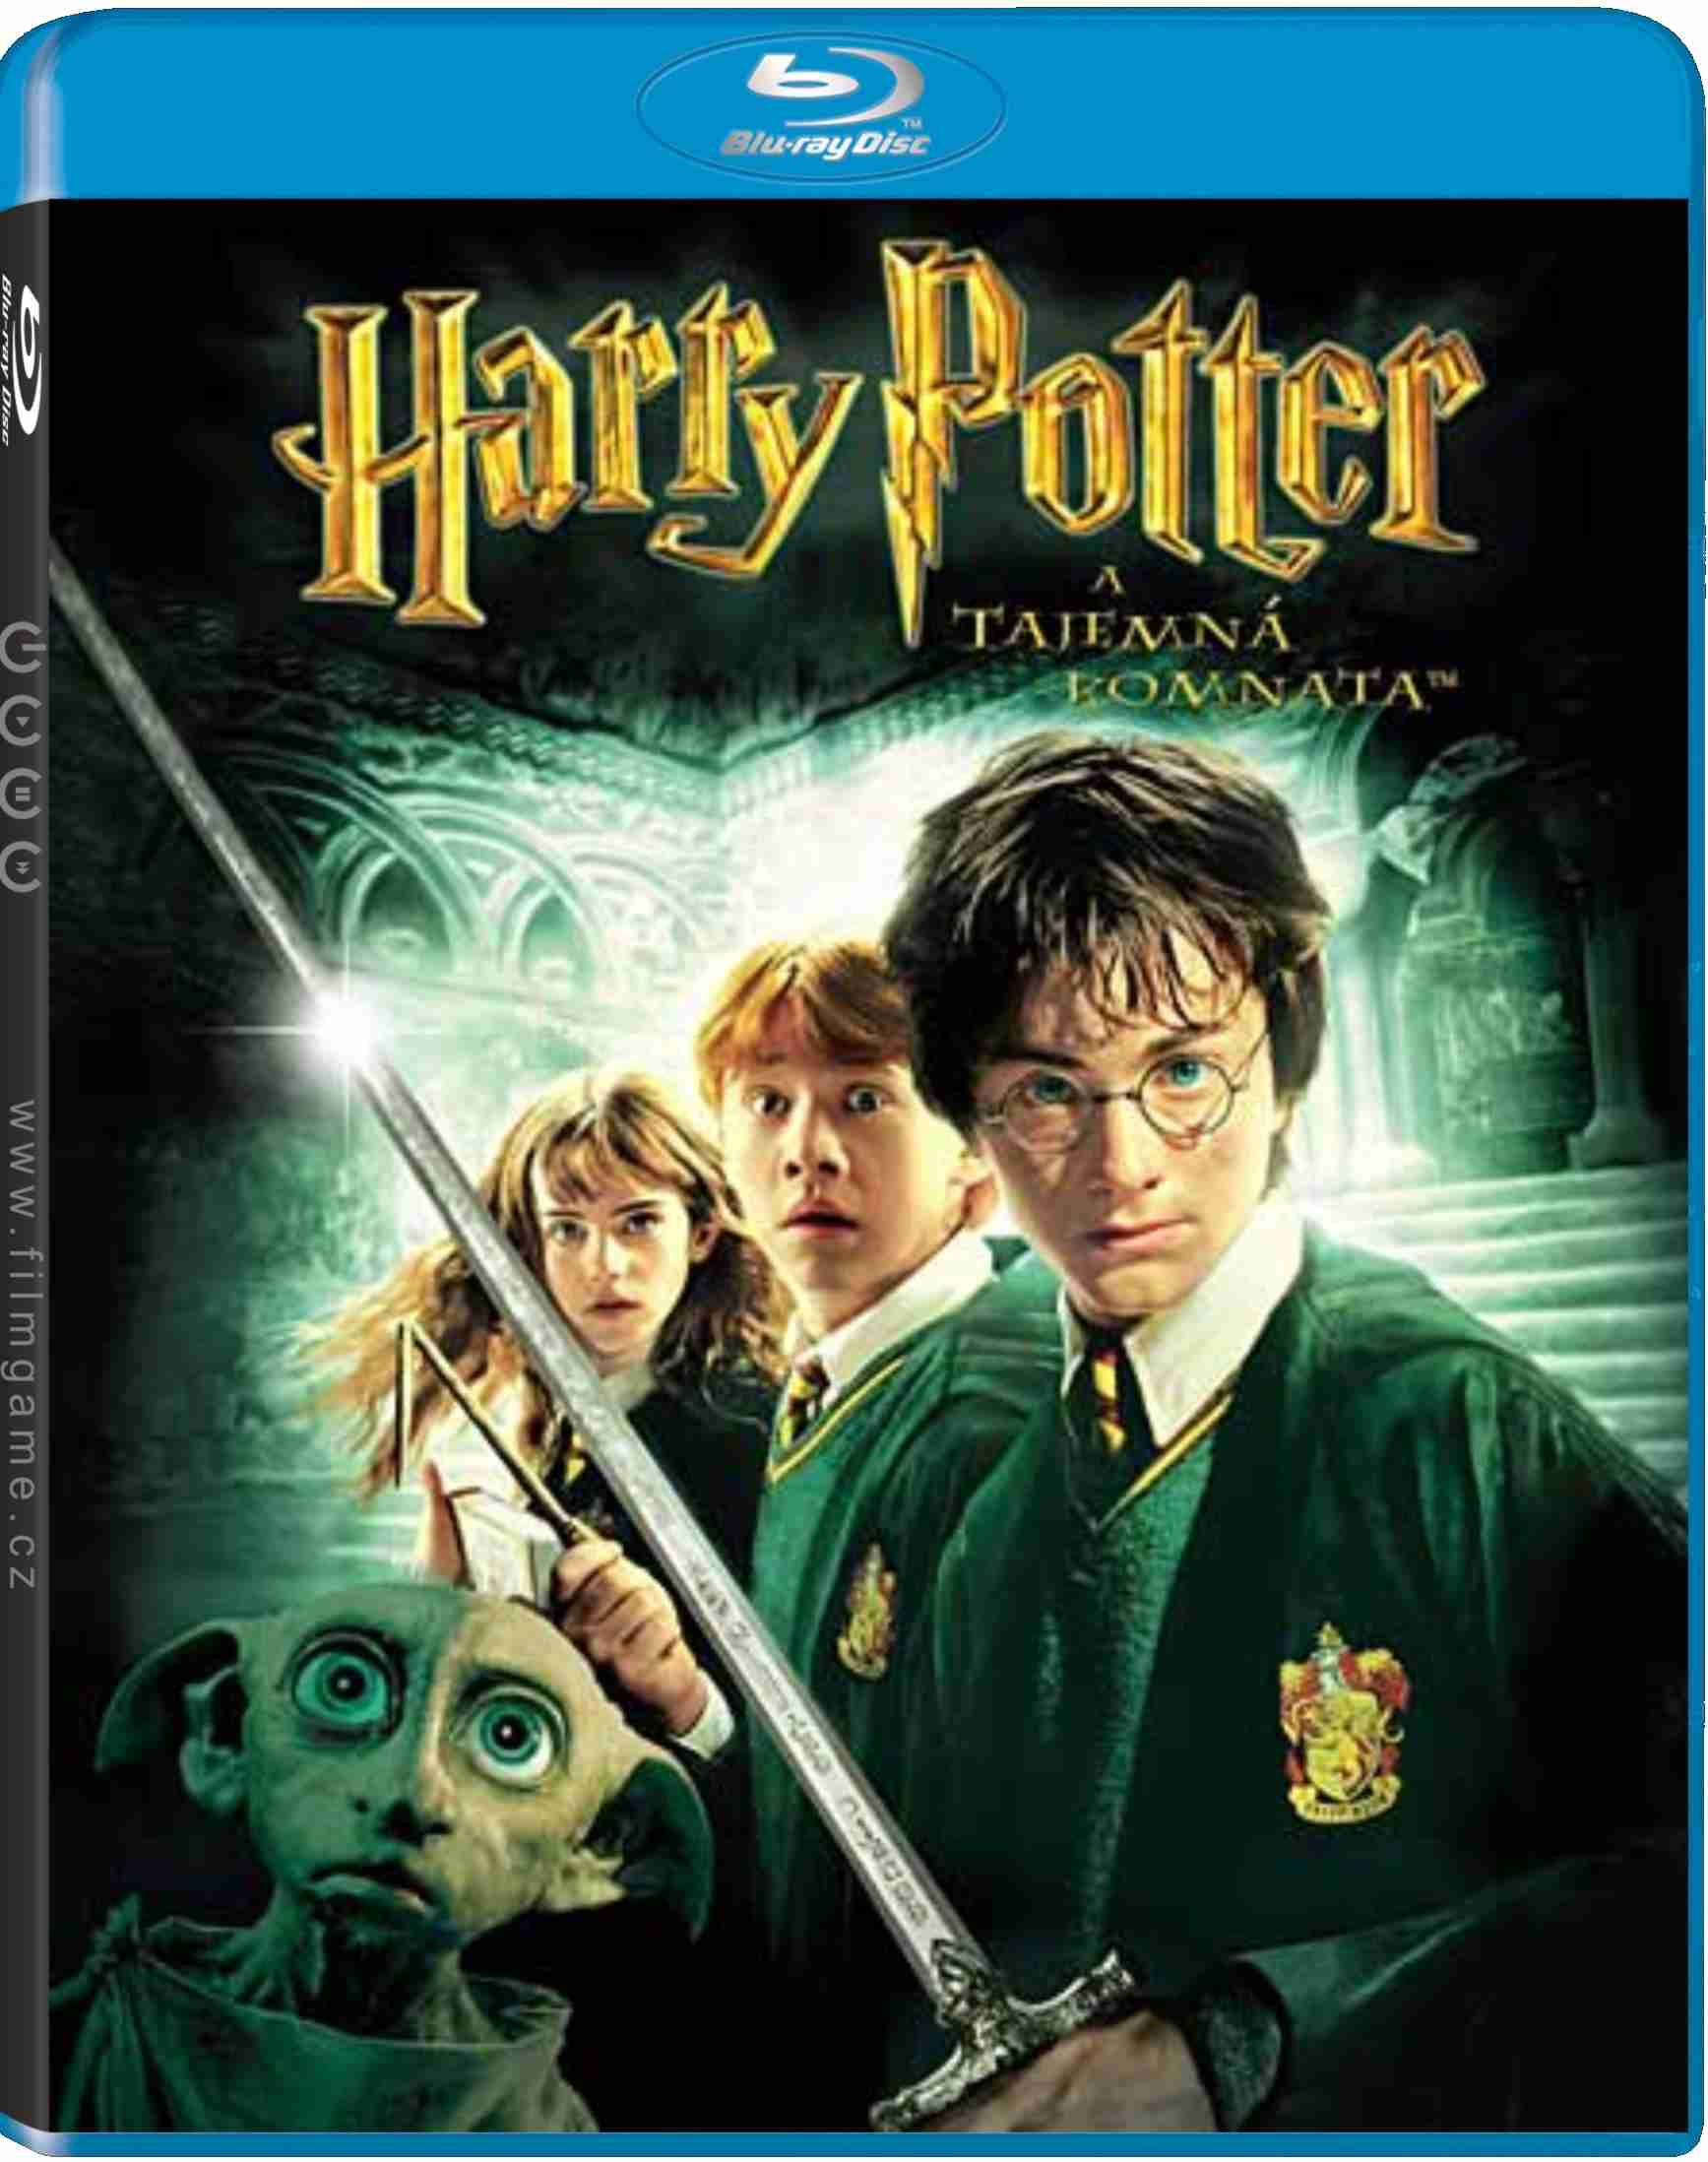 HARRY POTTER A TAJEMNÁ KOMNATA - Blu-ray